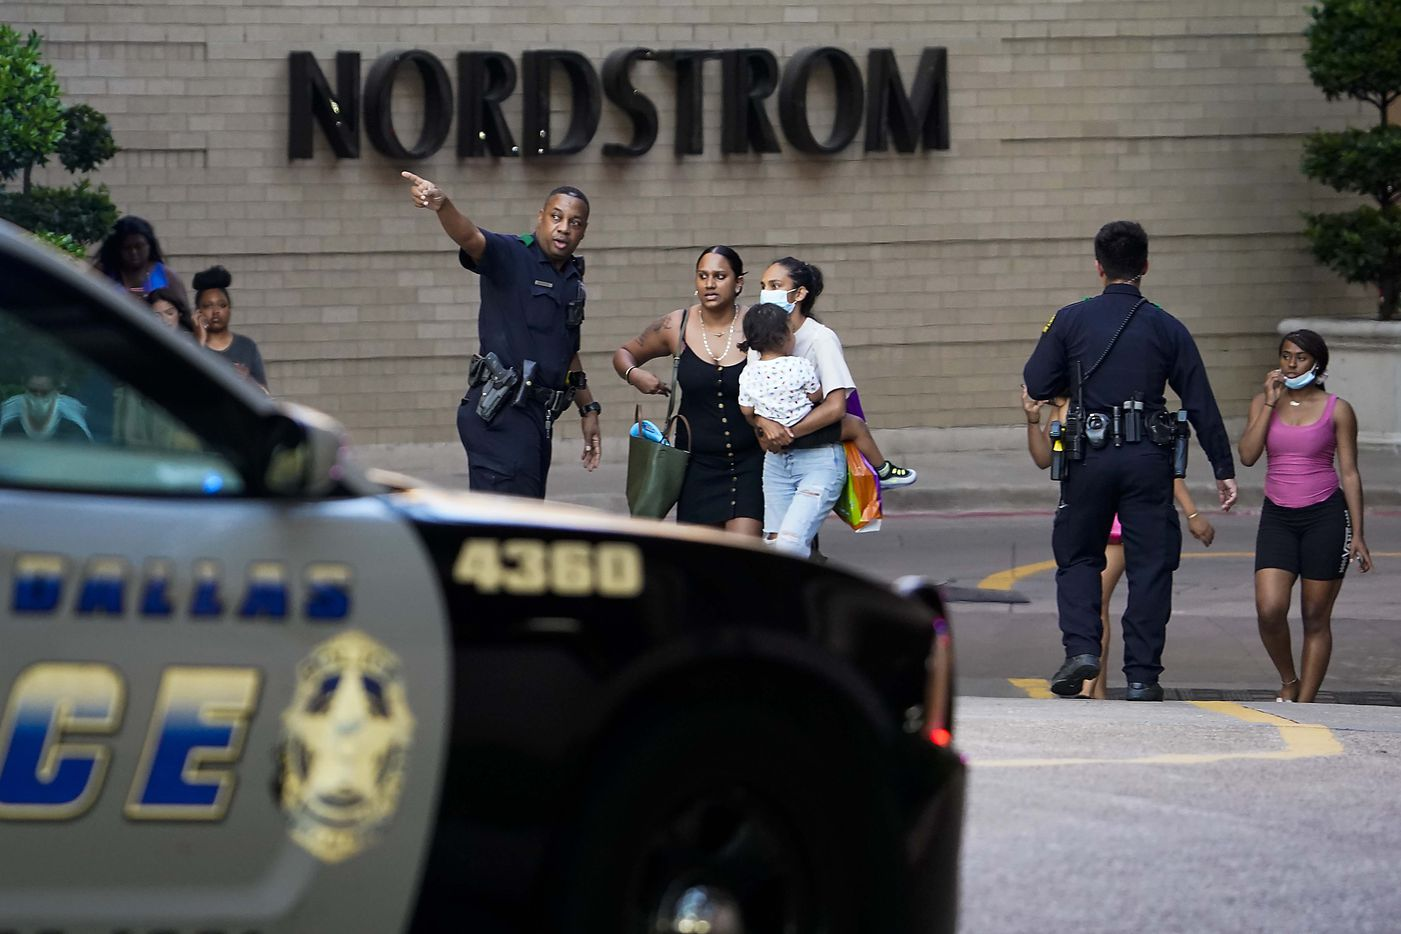 Dallas police direct people away from the Nordstrom store at the Galleria Dallas on Tuesday, June 16, 2020, in Dallas. One person was wounded as shots rang out at the Galleria Dallas mall on Tuesday evening, sending panicked shoppers running for stairwells and freight elevators. Dallas police said hours later that two males, in their teens or early 20s, had gotten into an argument that ended with one of them shooting the other just before 6:45 p.m. in the Far North Dallas mall's food court.